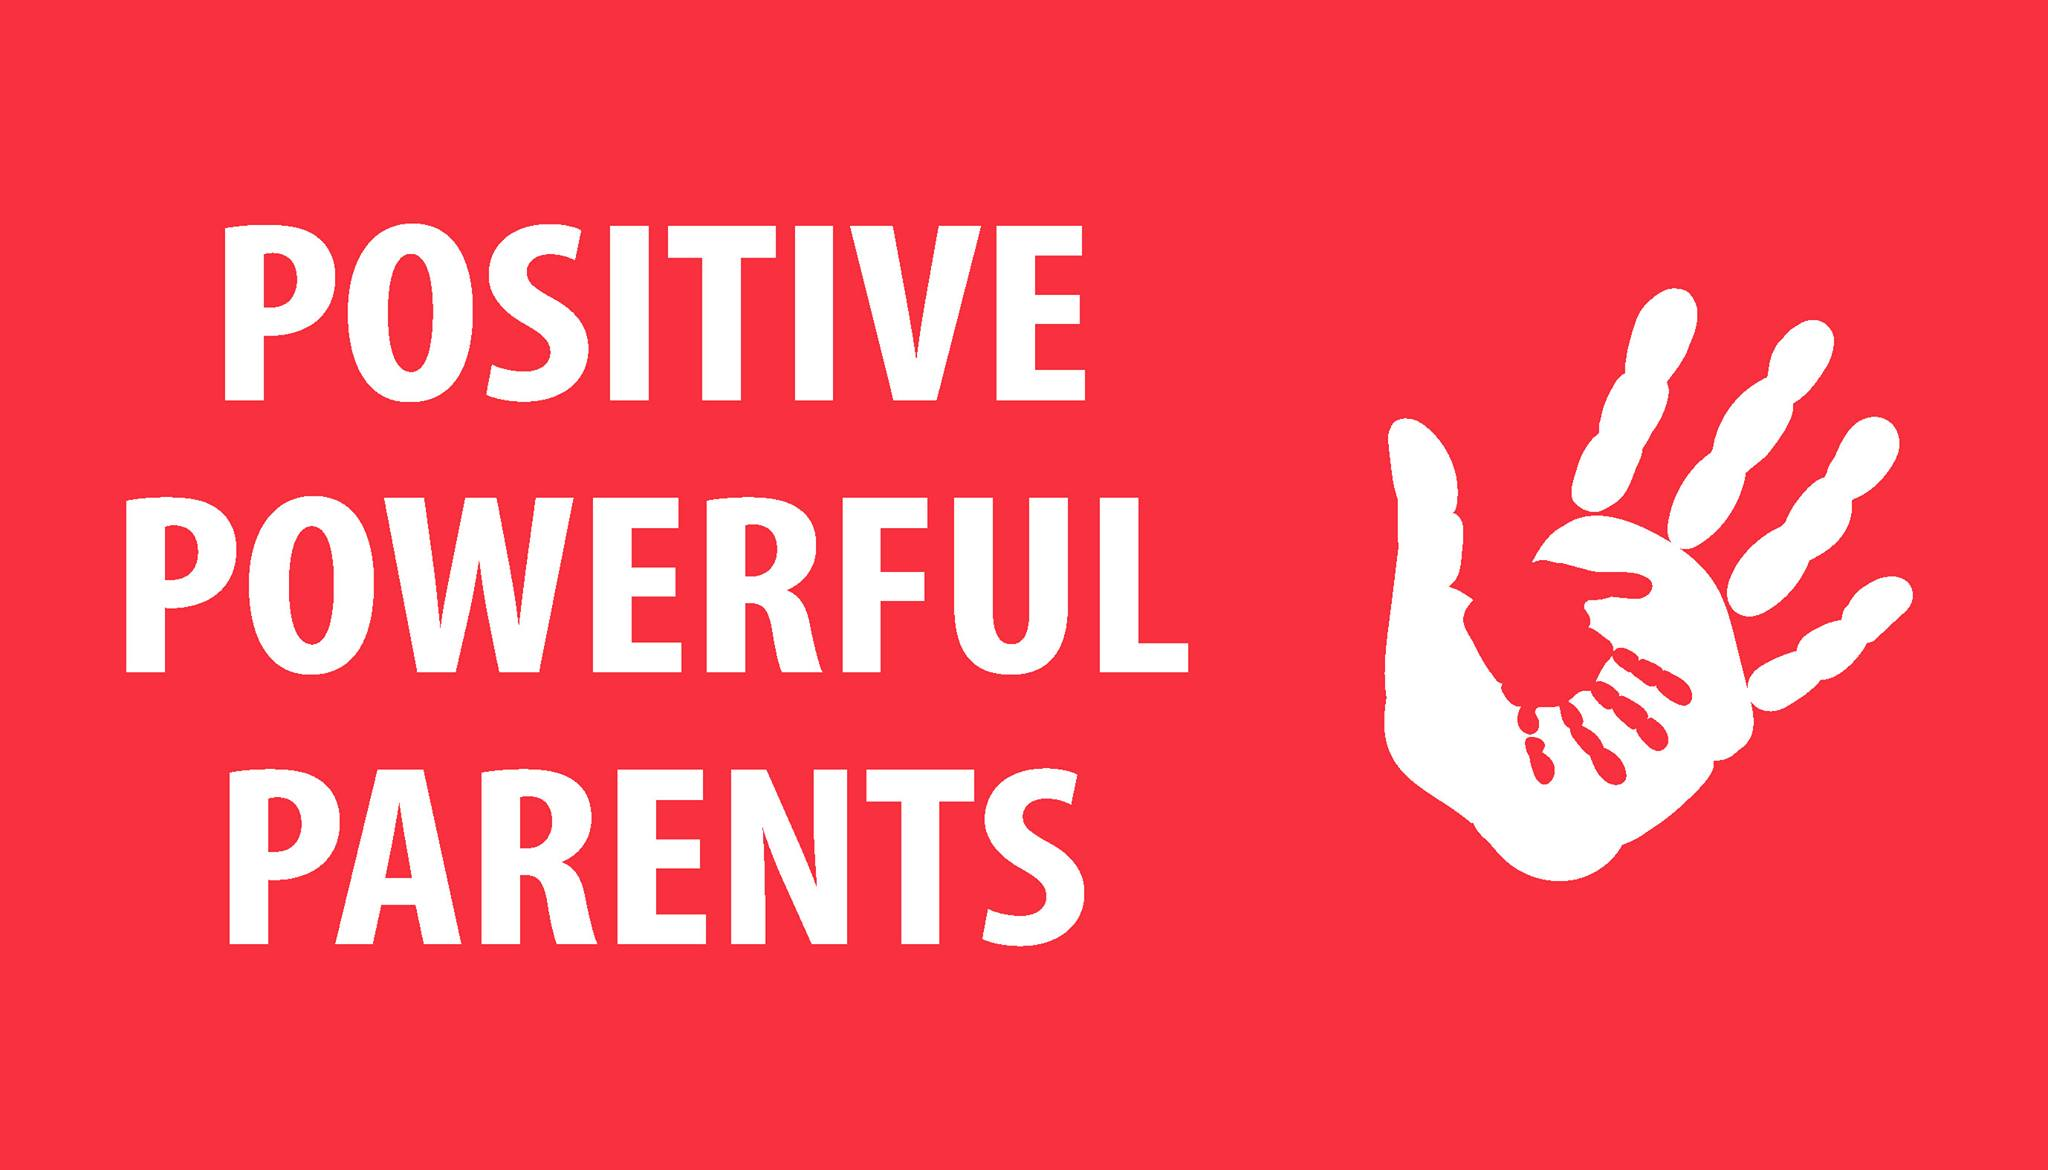 Positive Powerful Parents Facebook